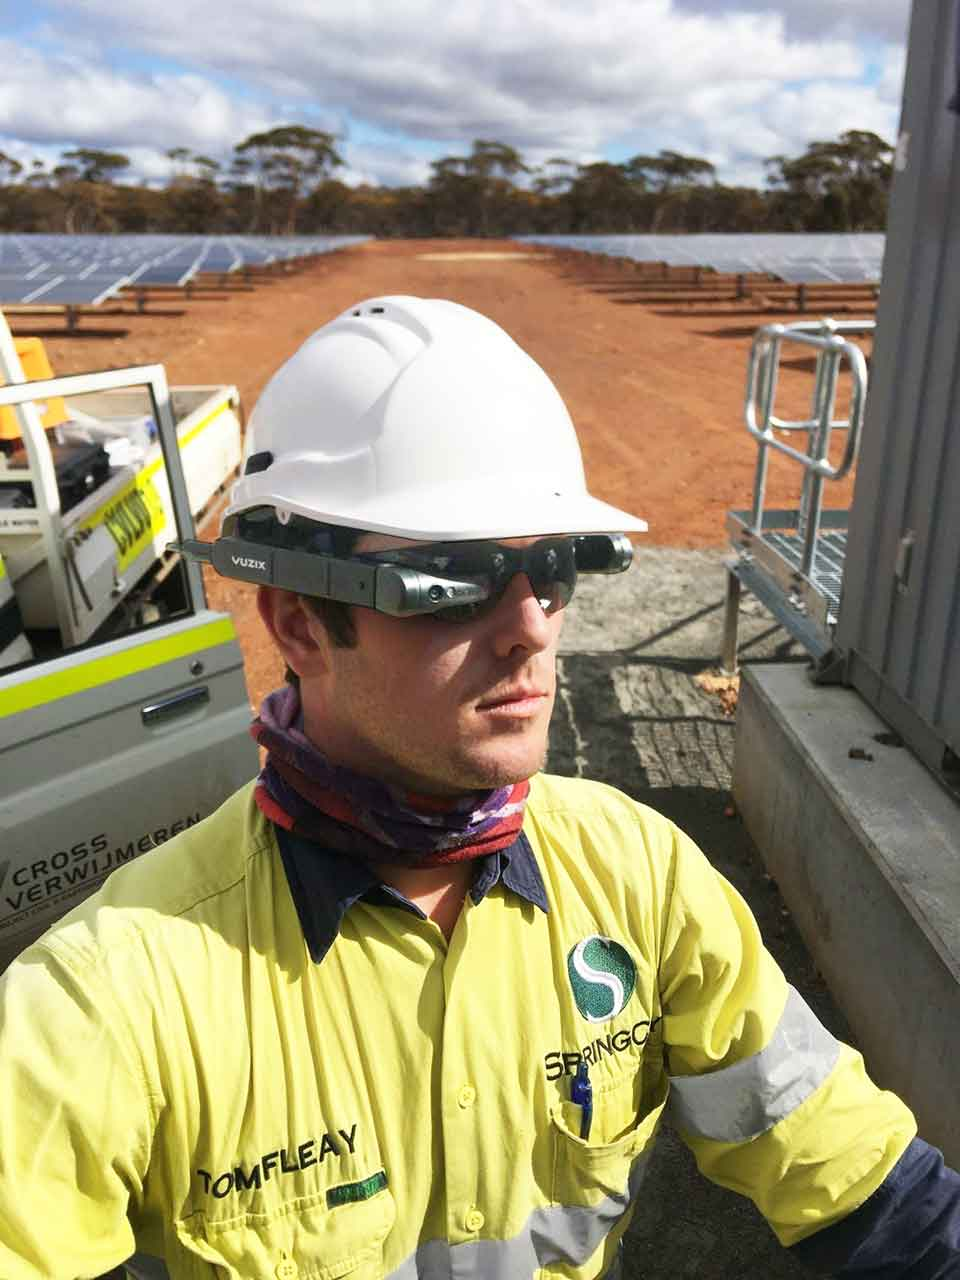 SpringCity Increases Productivity by 40% with M400 Smart Glasses